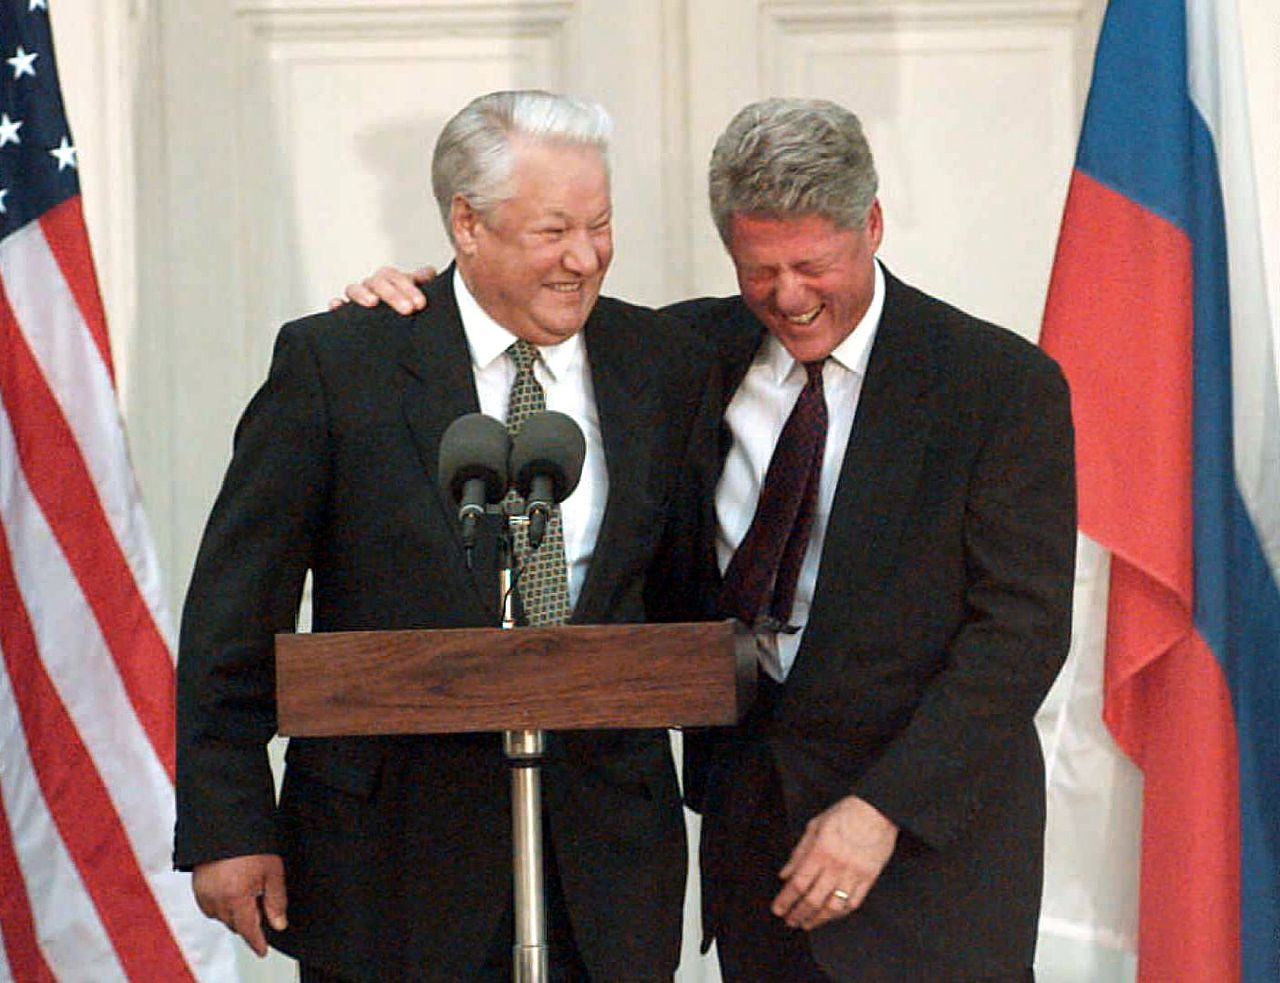 "De toenmalige Amerikaanse president Bill Clinton staat samen met de inmiddels overleden Russische president Jeltsin op 23 april 2007 in Hyde Park, New York, de pers te woord Foto AFP/Don Emmert (FILES) US President Clinton (R) laughs with Russian Federation President Boris Yeltsin during a press conference 23 October 1995 after their meeting in Hyde Park. Russia's former president Boris Yeltsin died 23 April 2007, a Kremlin spokesman told AFP Monday. He was 76. ""Former president Boris Yeltsin died today,"" the spokesman said. AFP PHOTO FILES / DON EMMERT Rectificaties / gerectificeerd De foto toont niet Boris Jeltsin en Bill Clinton in New York in 2007, maar in 1995."